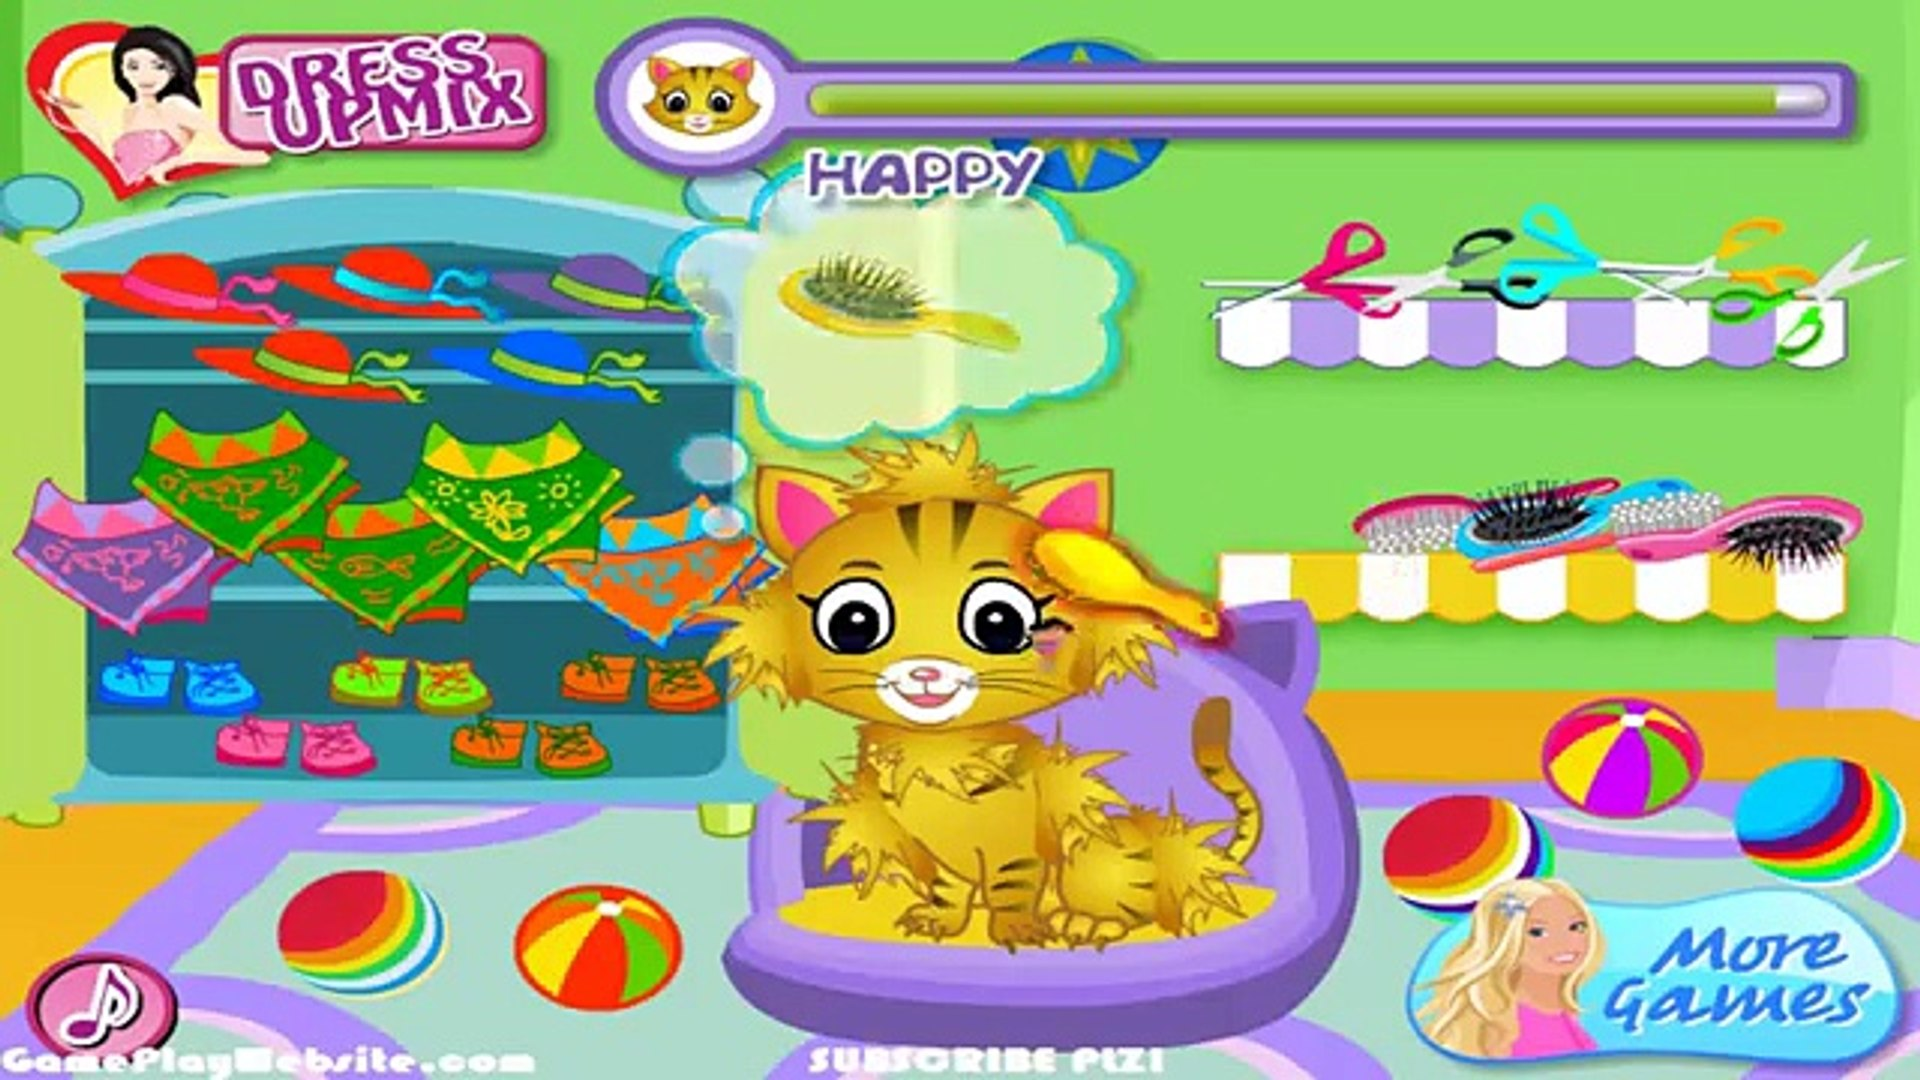 Dora pets care - Dora Games for Baby and Girls - Online Game for Children